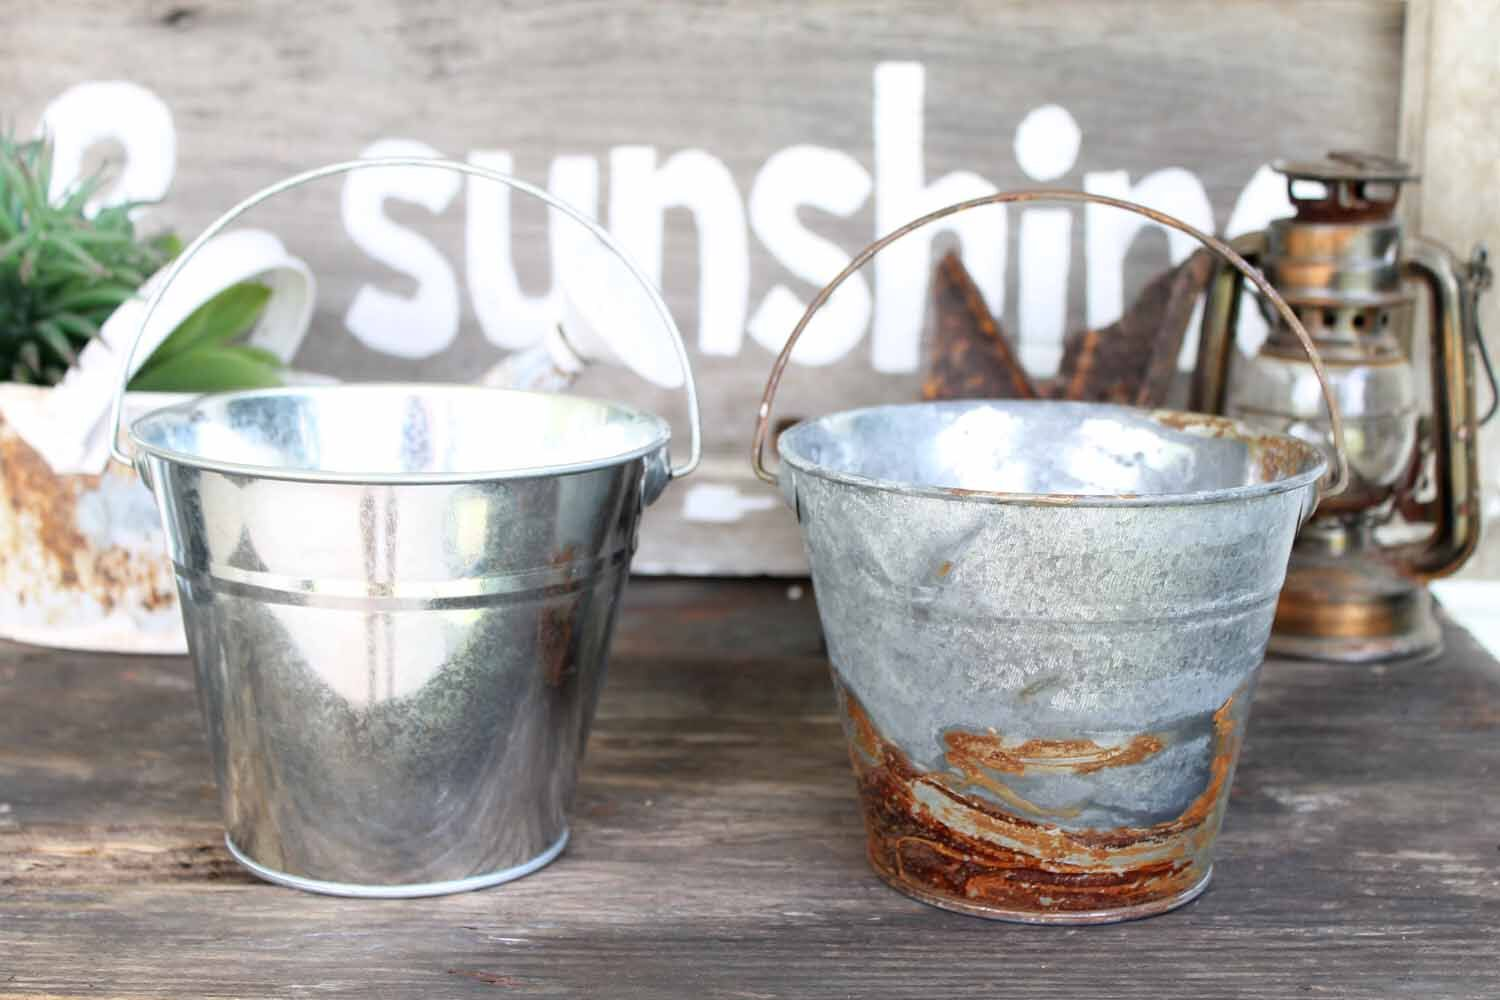 Shiny metal is transformed in to rustic beauties